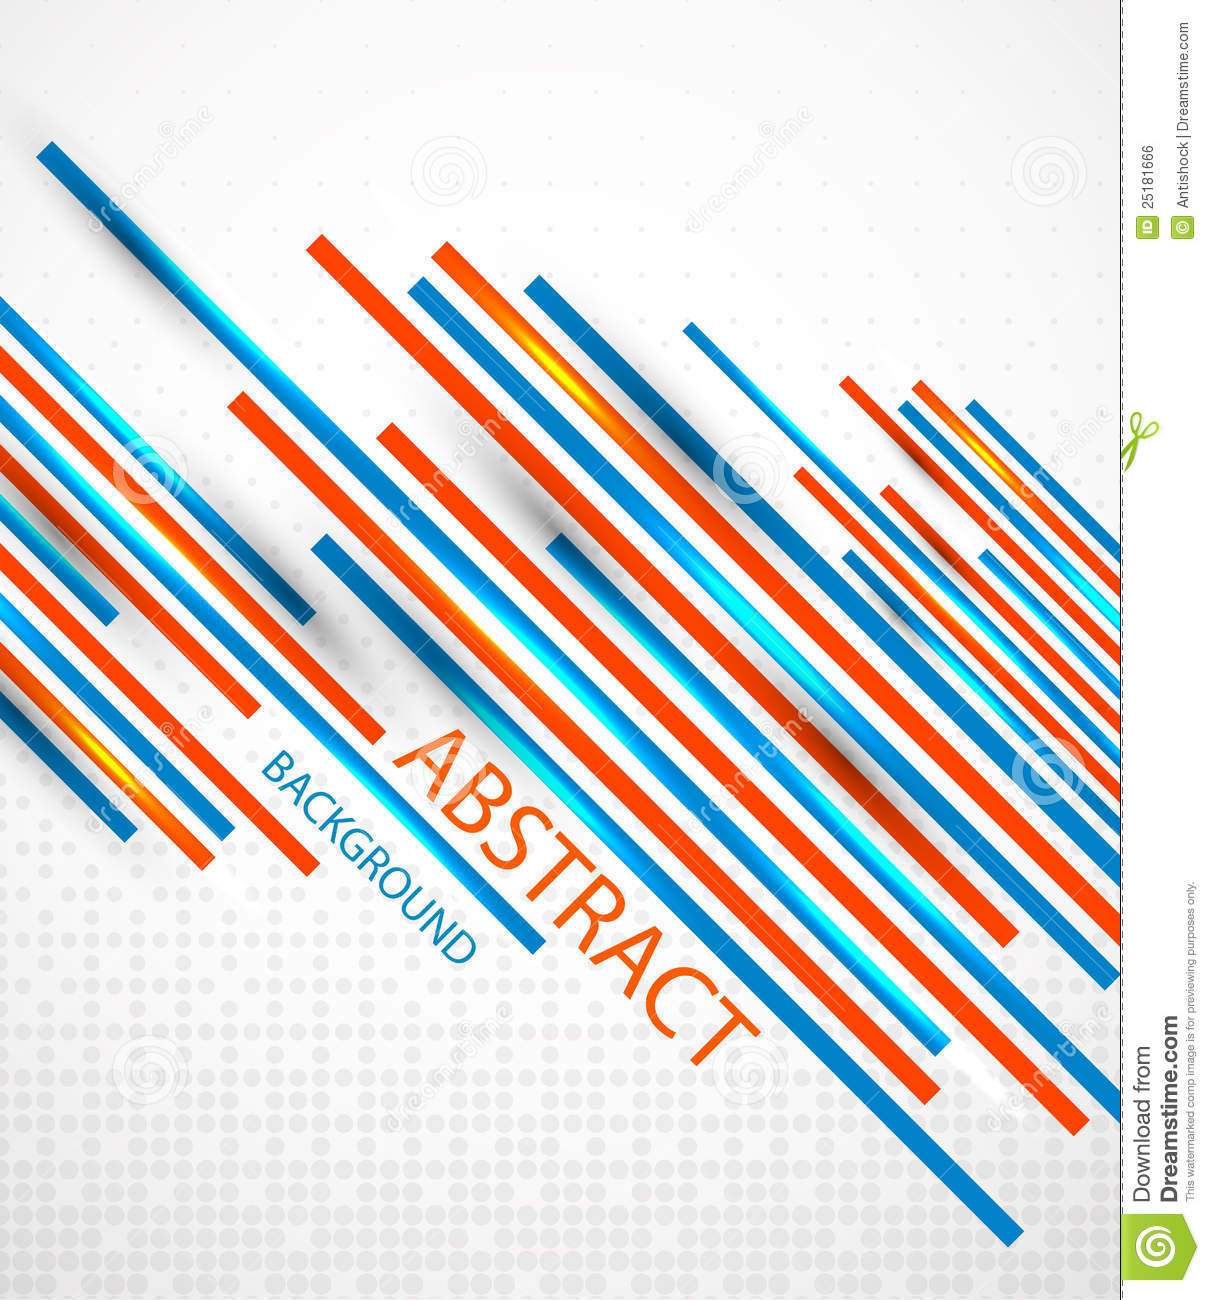 Straight Line Art Vector : Abstract straight lines background royalty free stock